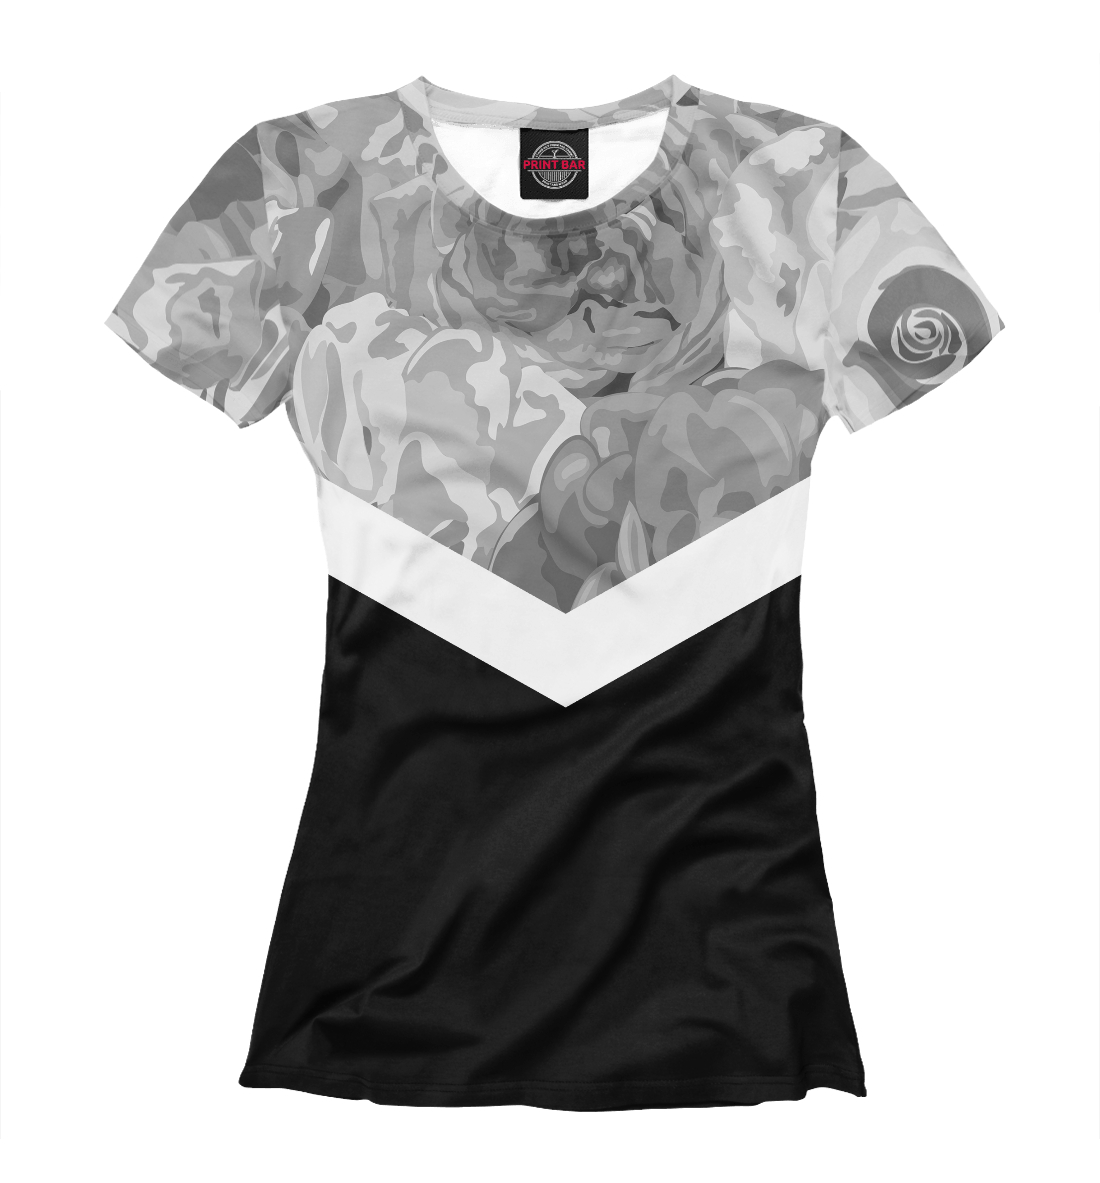 Купить Roses Black&White Collection, Printbar, Футболки, APD-789004-fut-1